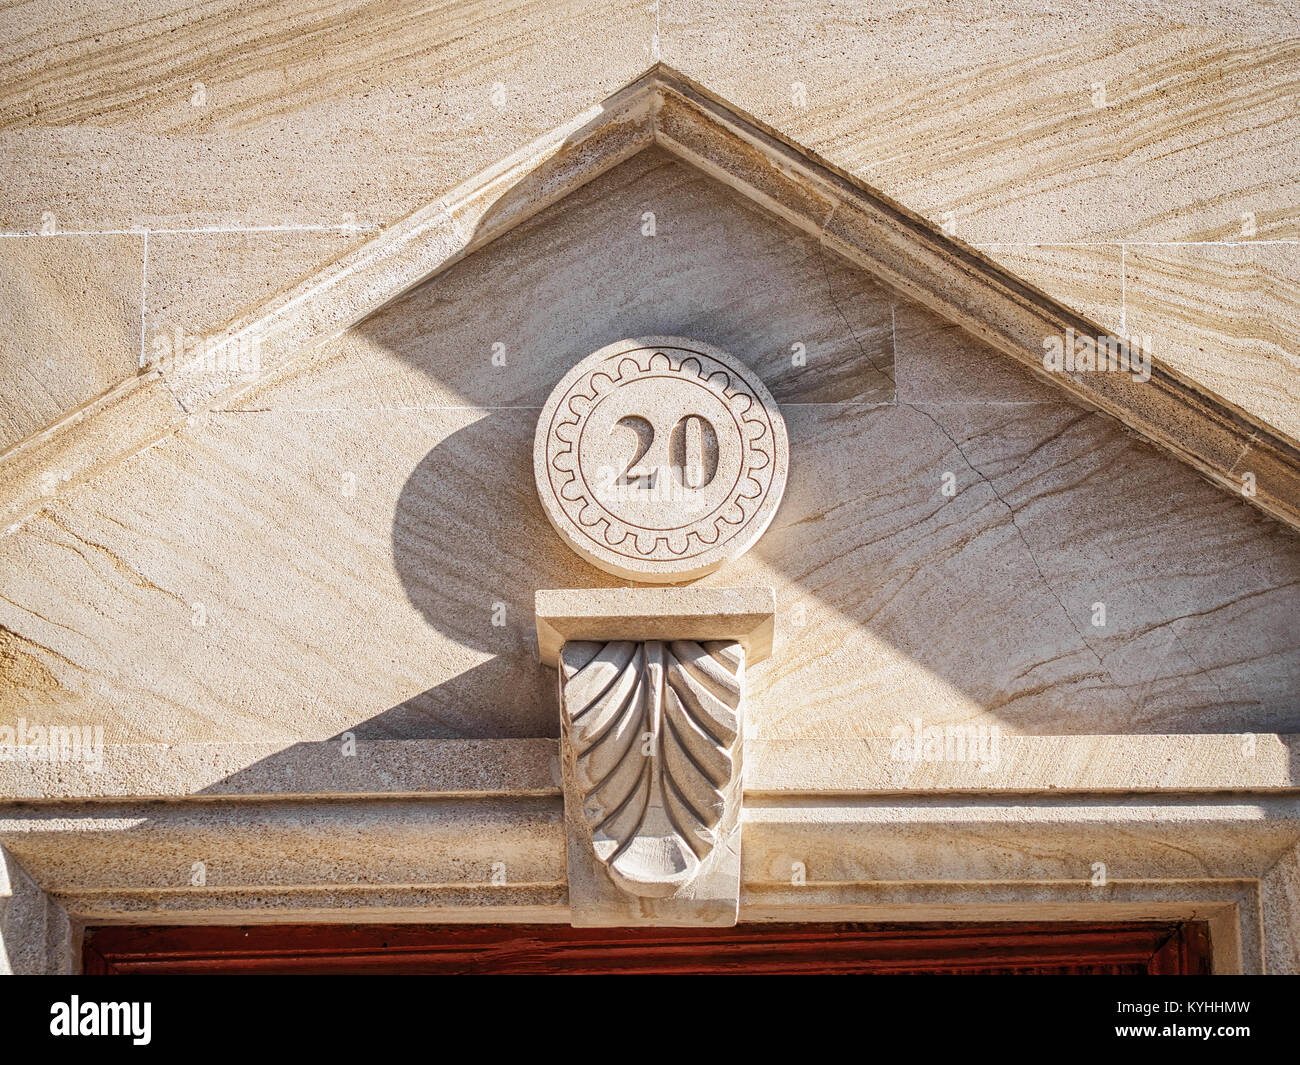 Oriental style stone house number in Baku old town - Stock Image